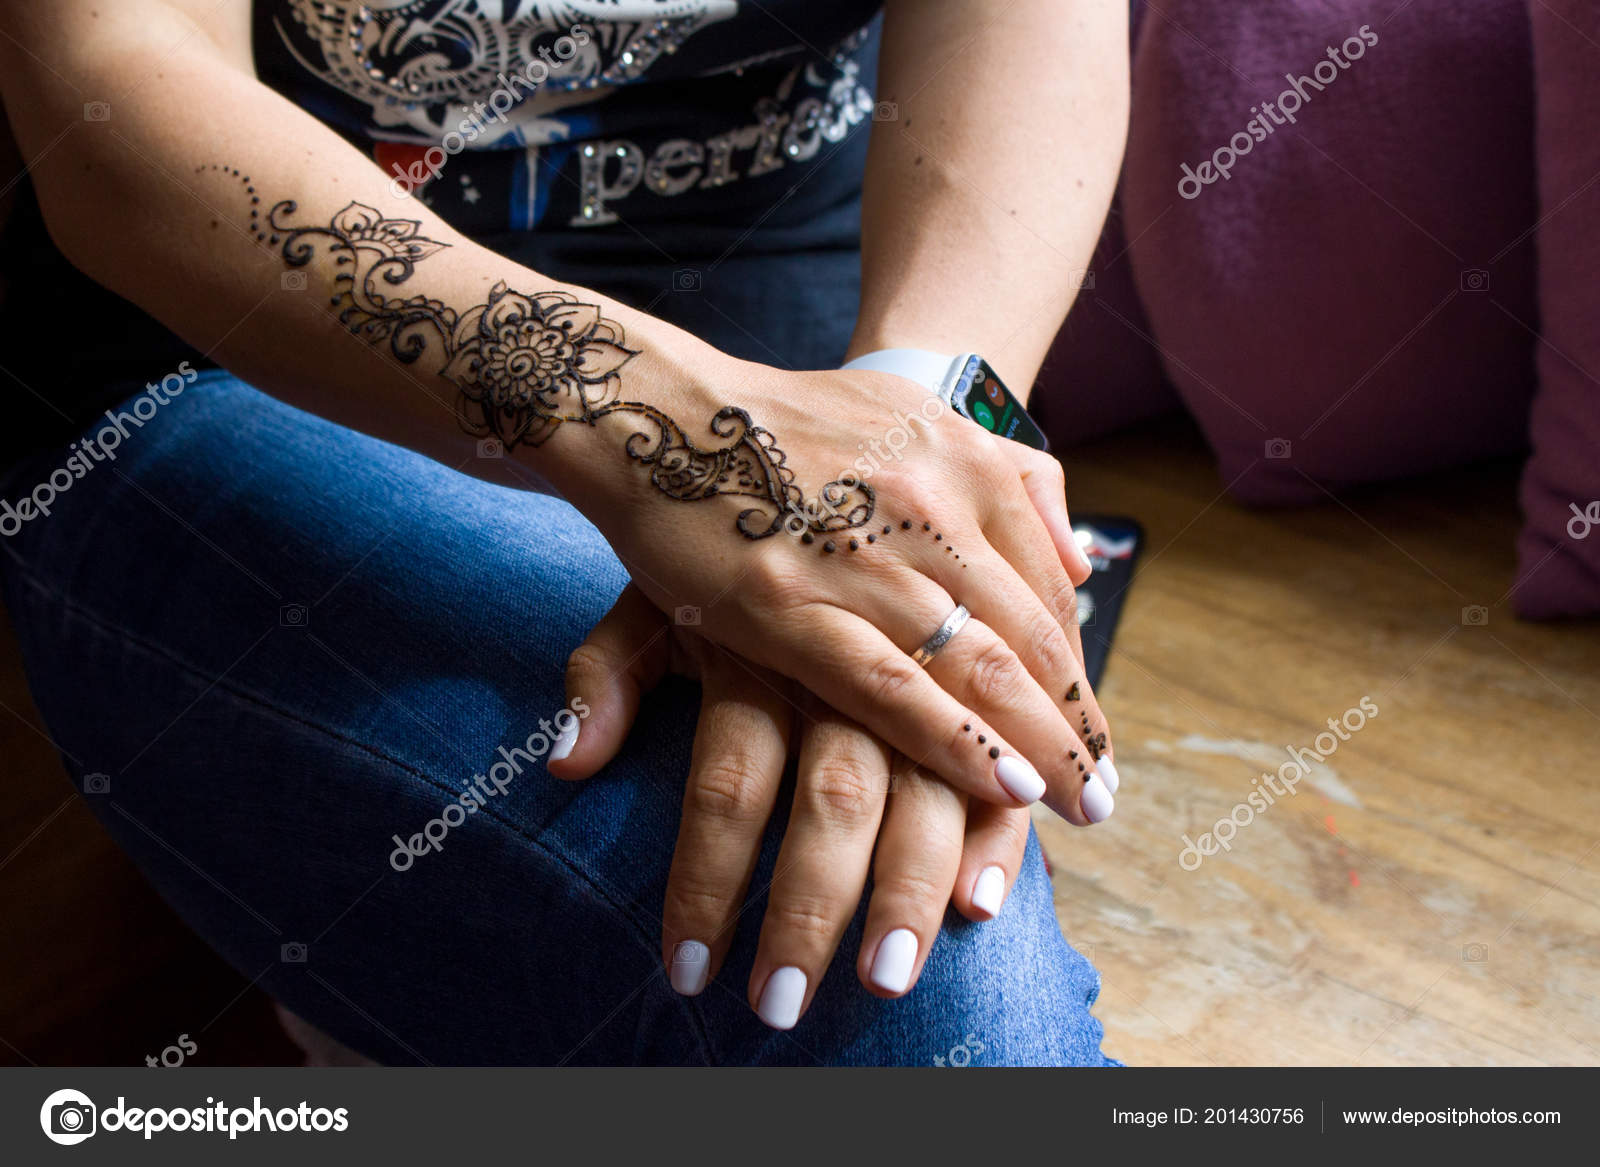 Beauty Fashion Concept Henna Tattoo Women Hands Mehndi Traditional